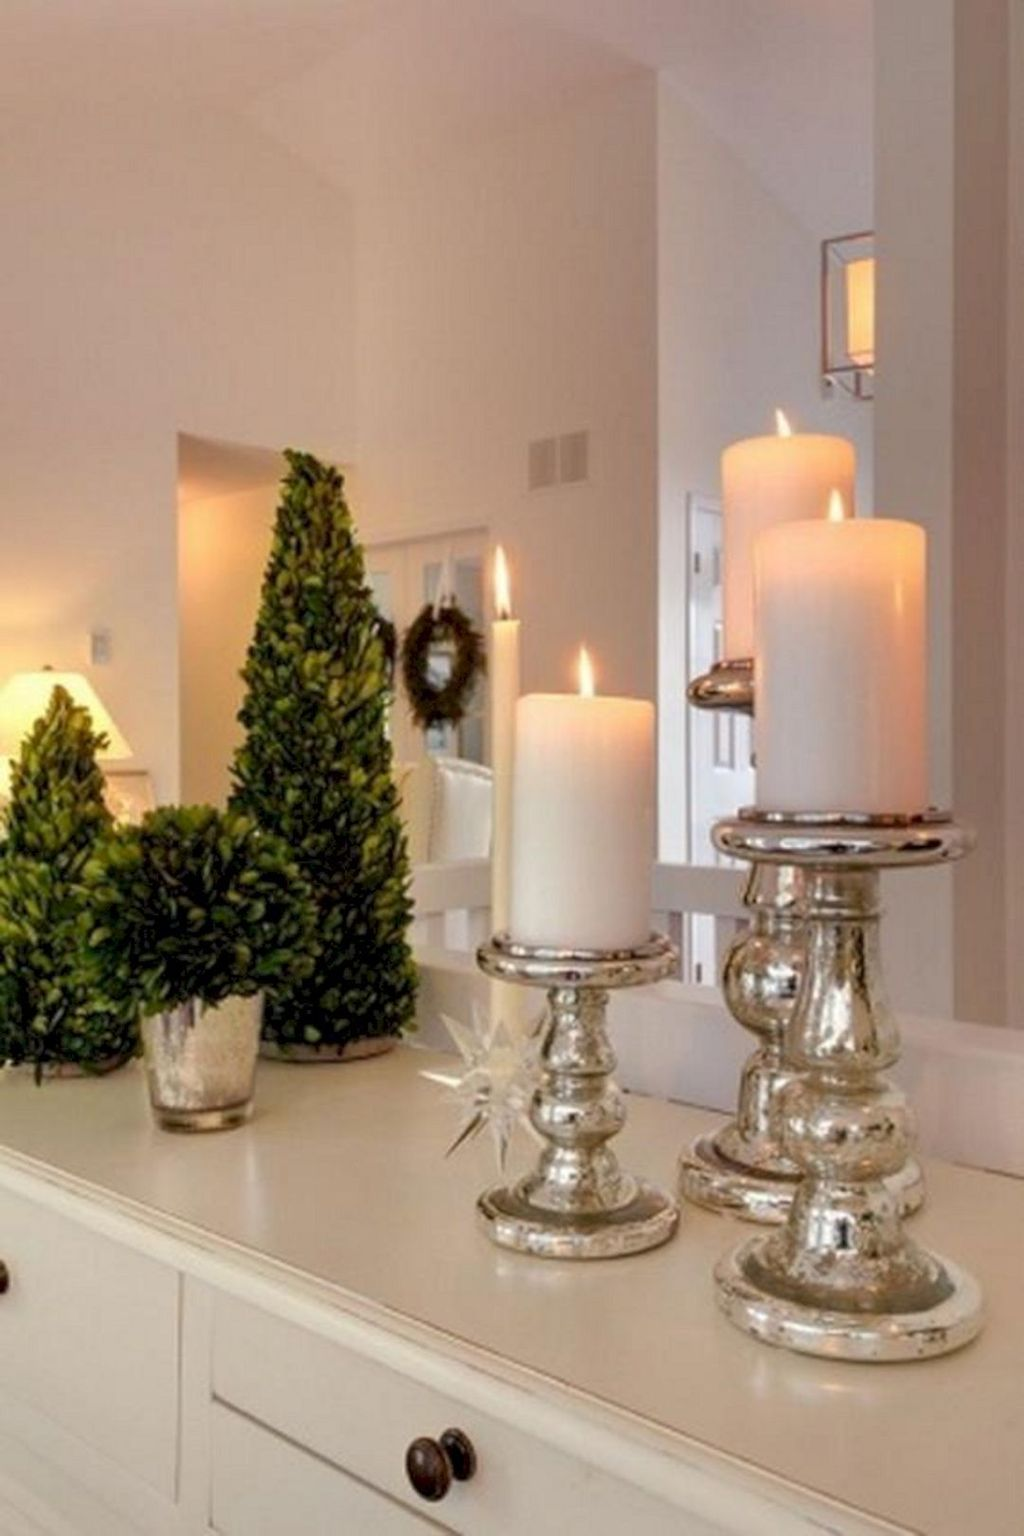 Fabulous Christmas Theme Bathroom Decor Ideas Trend 2019 10